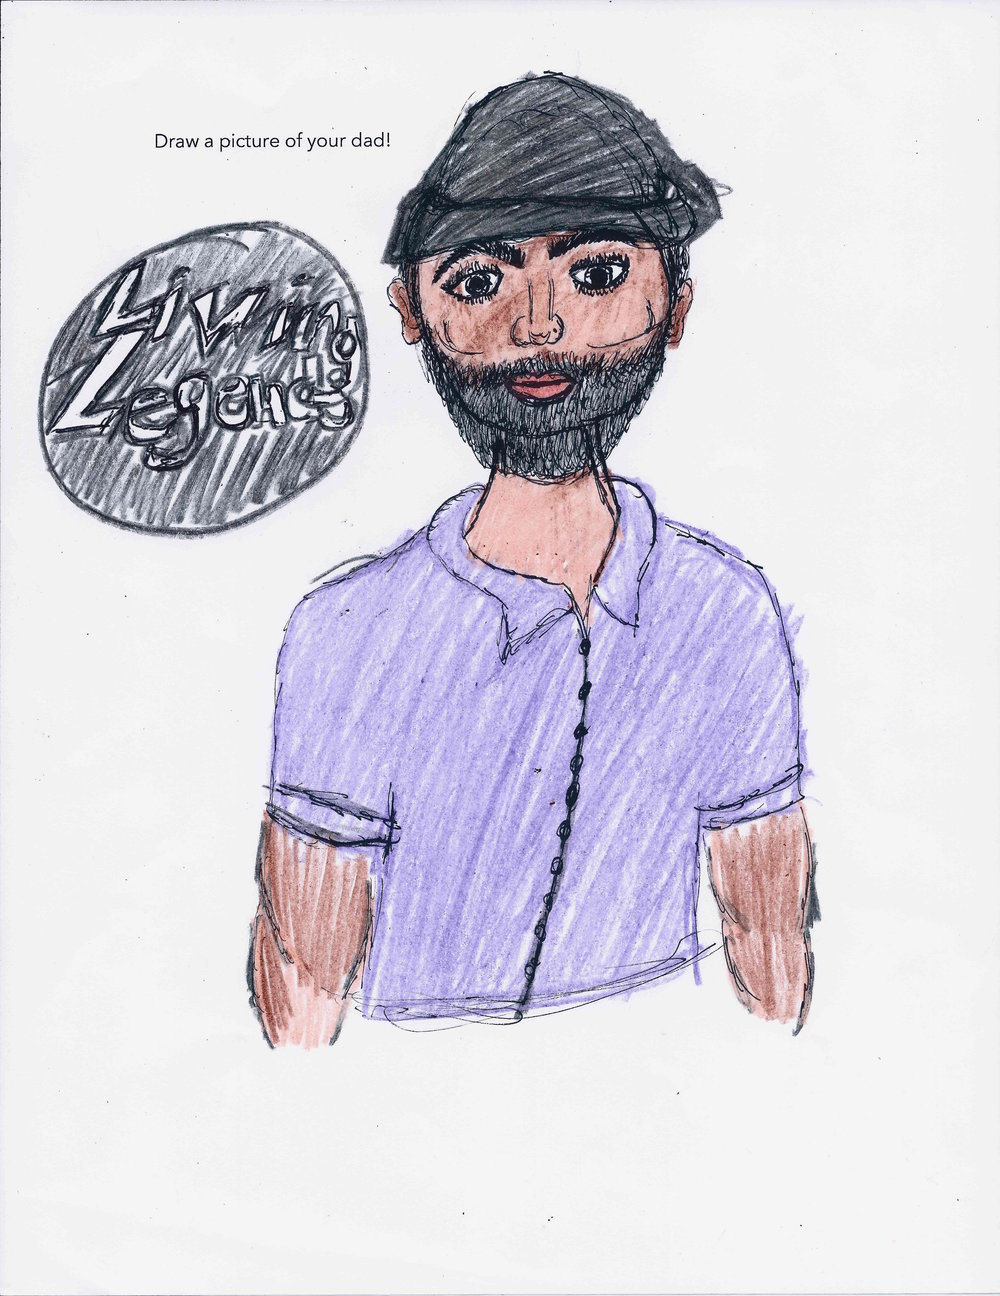 Indigo's drawing of her father